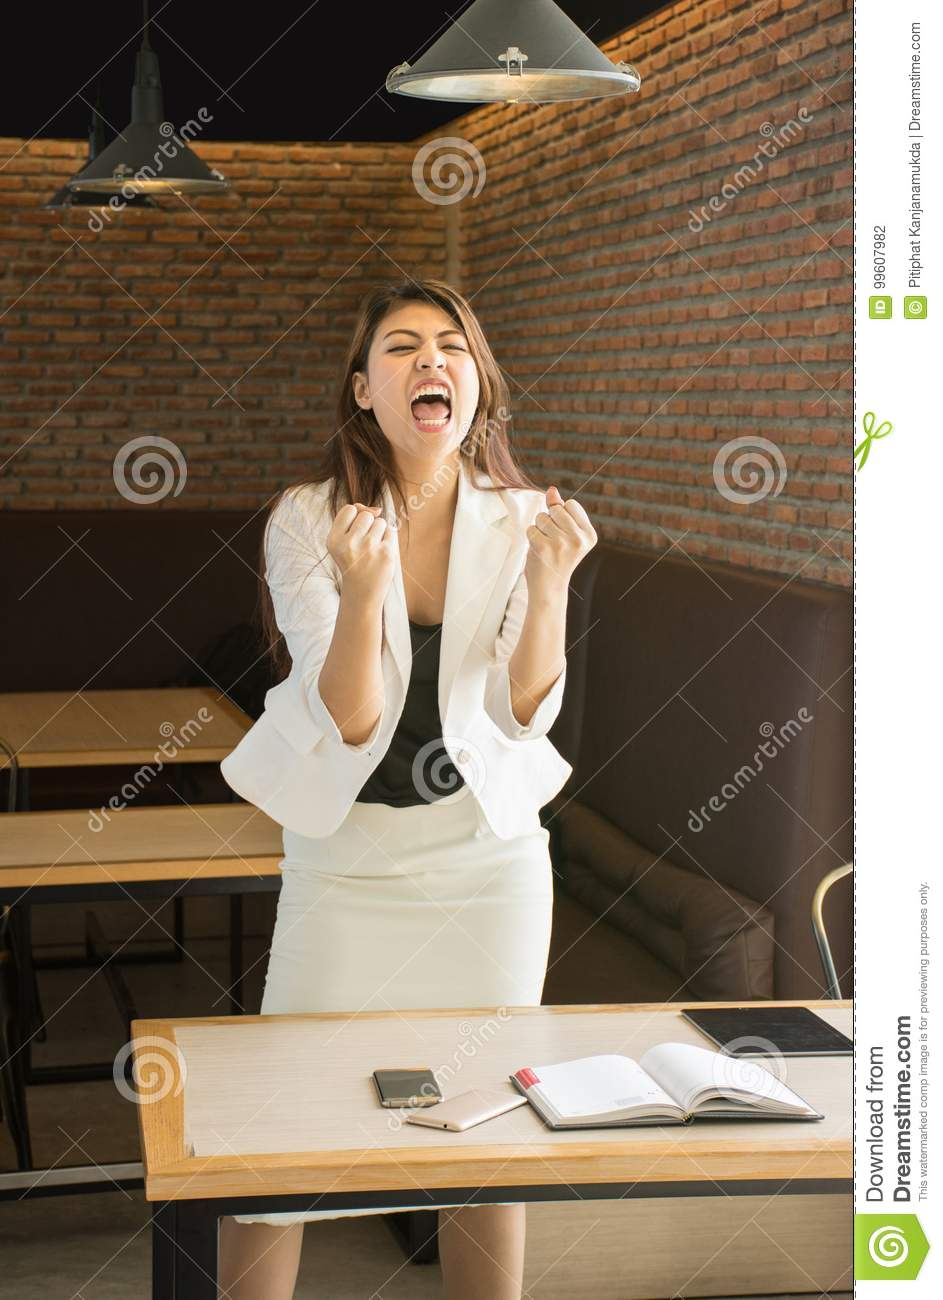 Successful Asian business woman with arms up